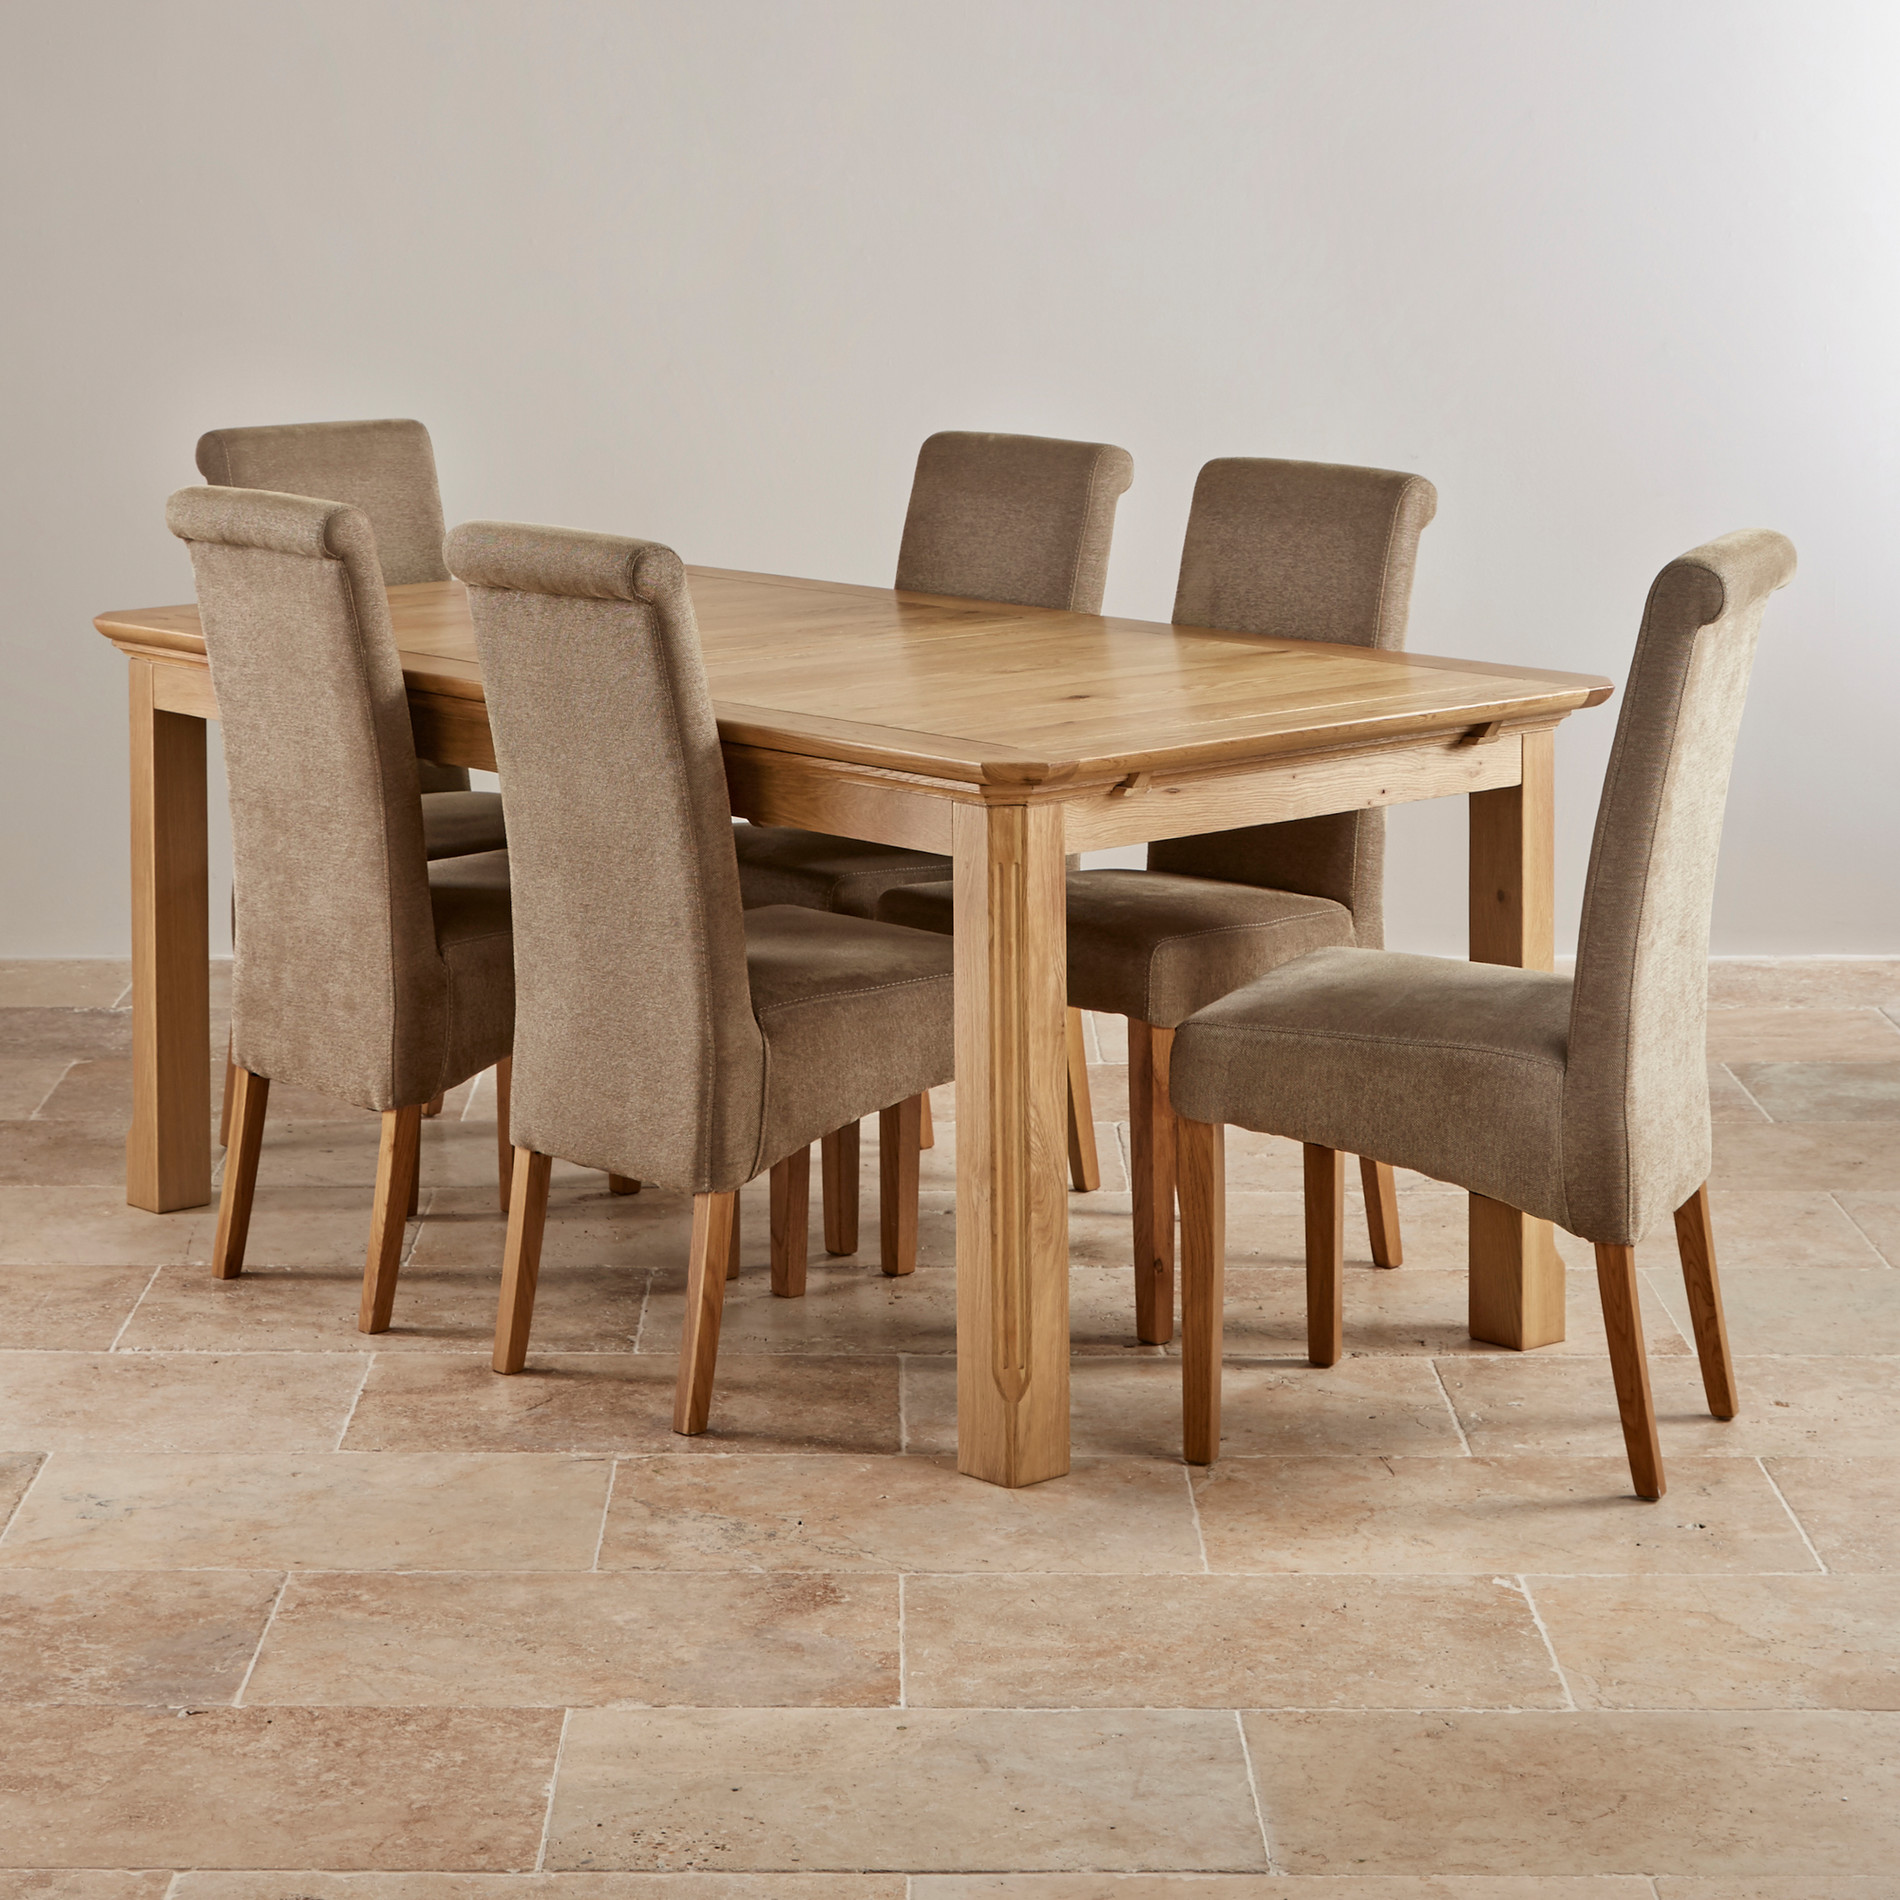 Edinburgh natural solid oak dining set 6ft extending for Dining table set for 6